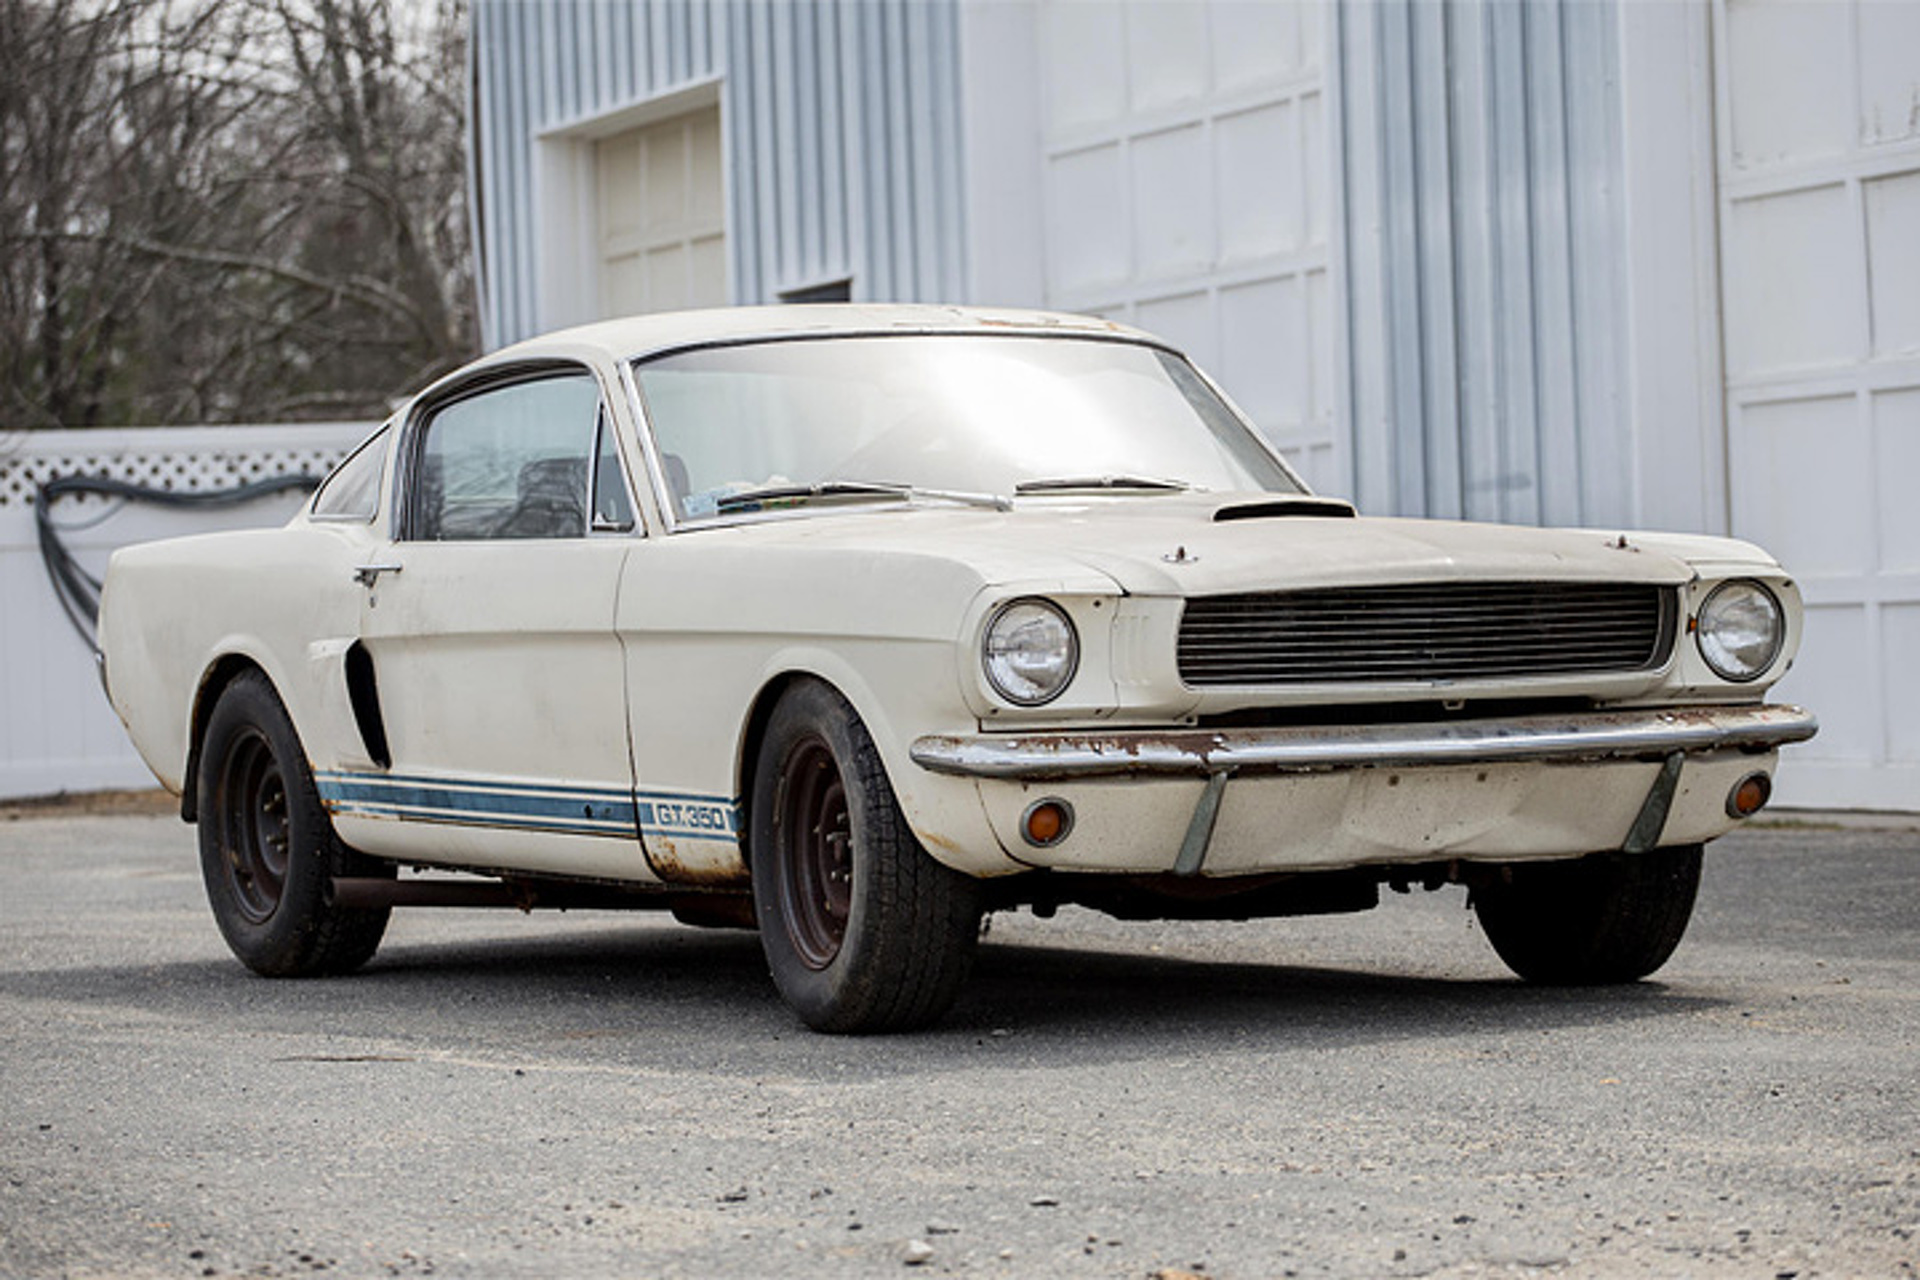 Shelby gt350 barn find is a true 60s time capsule